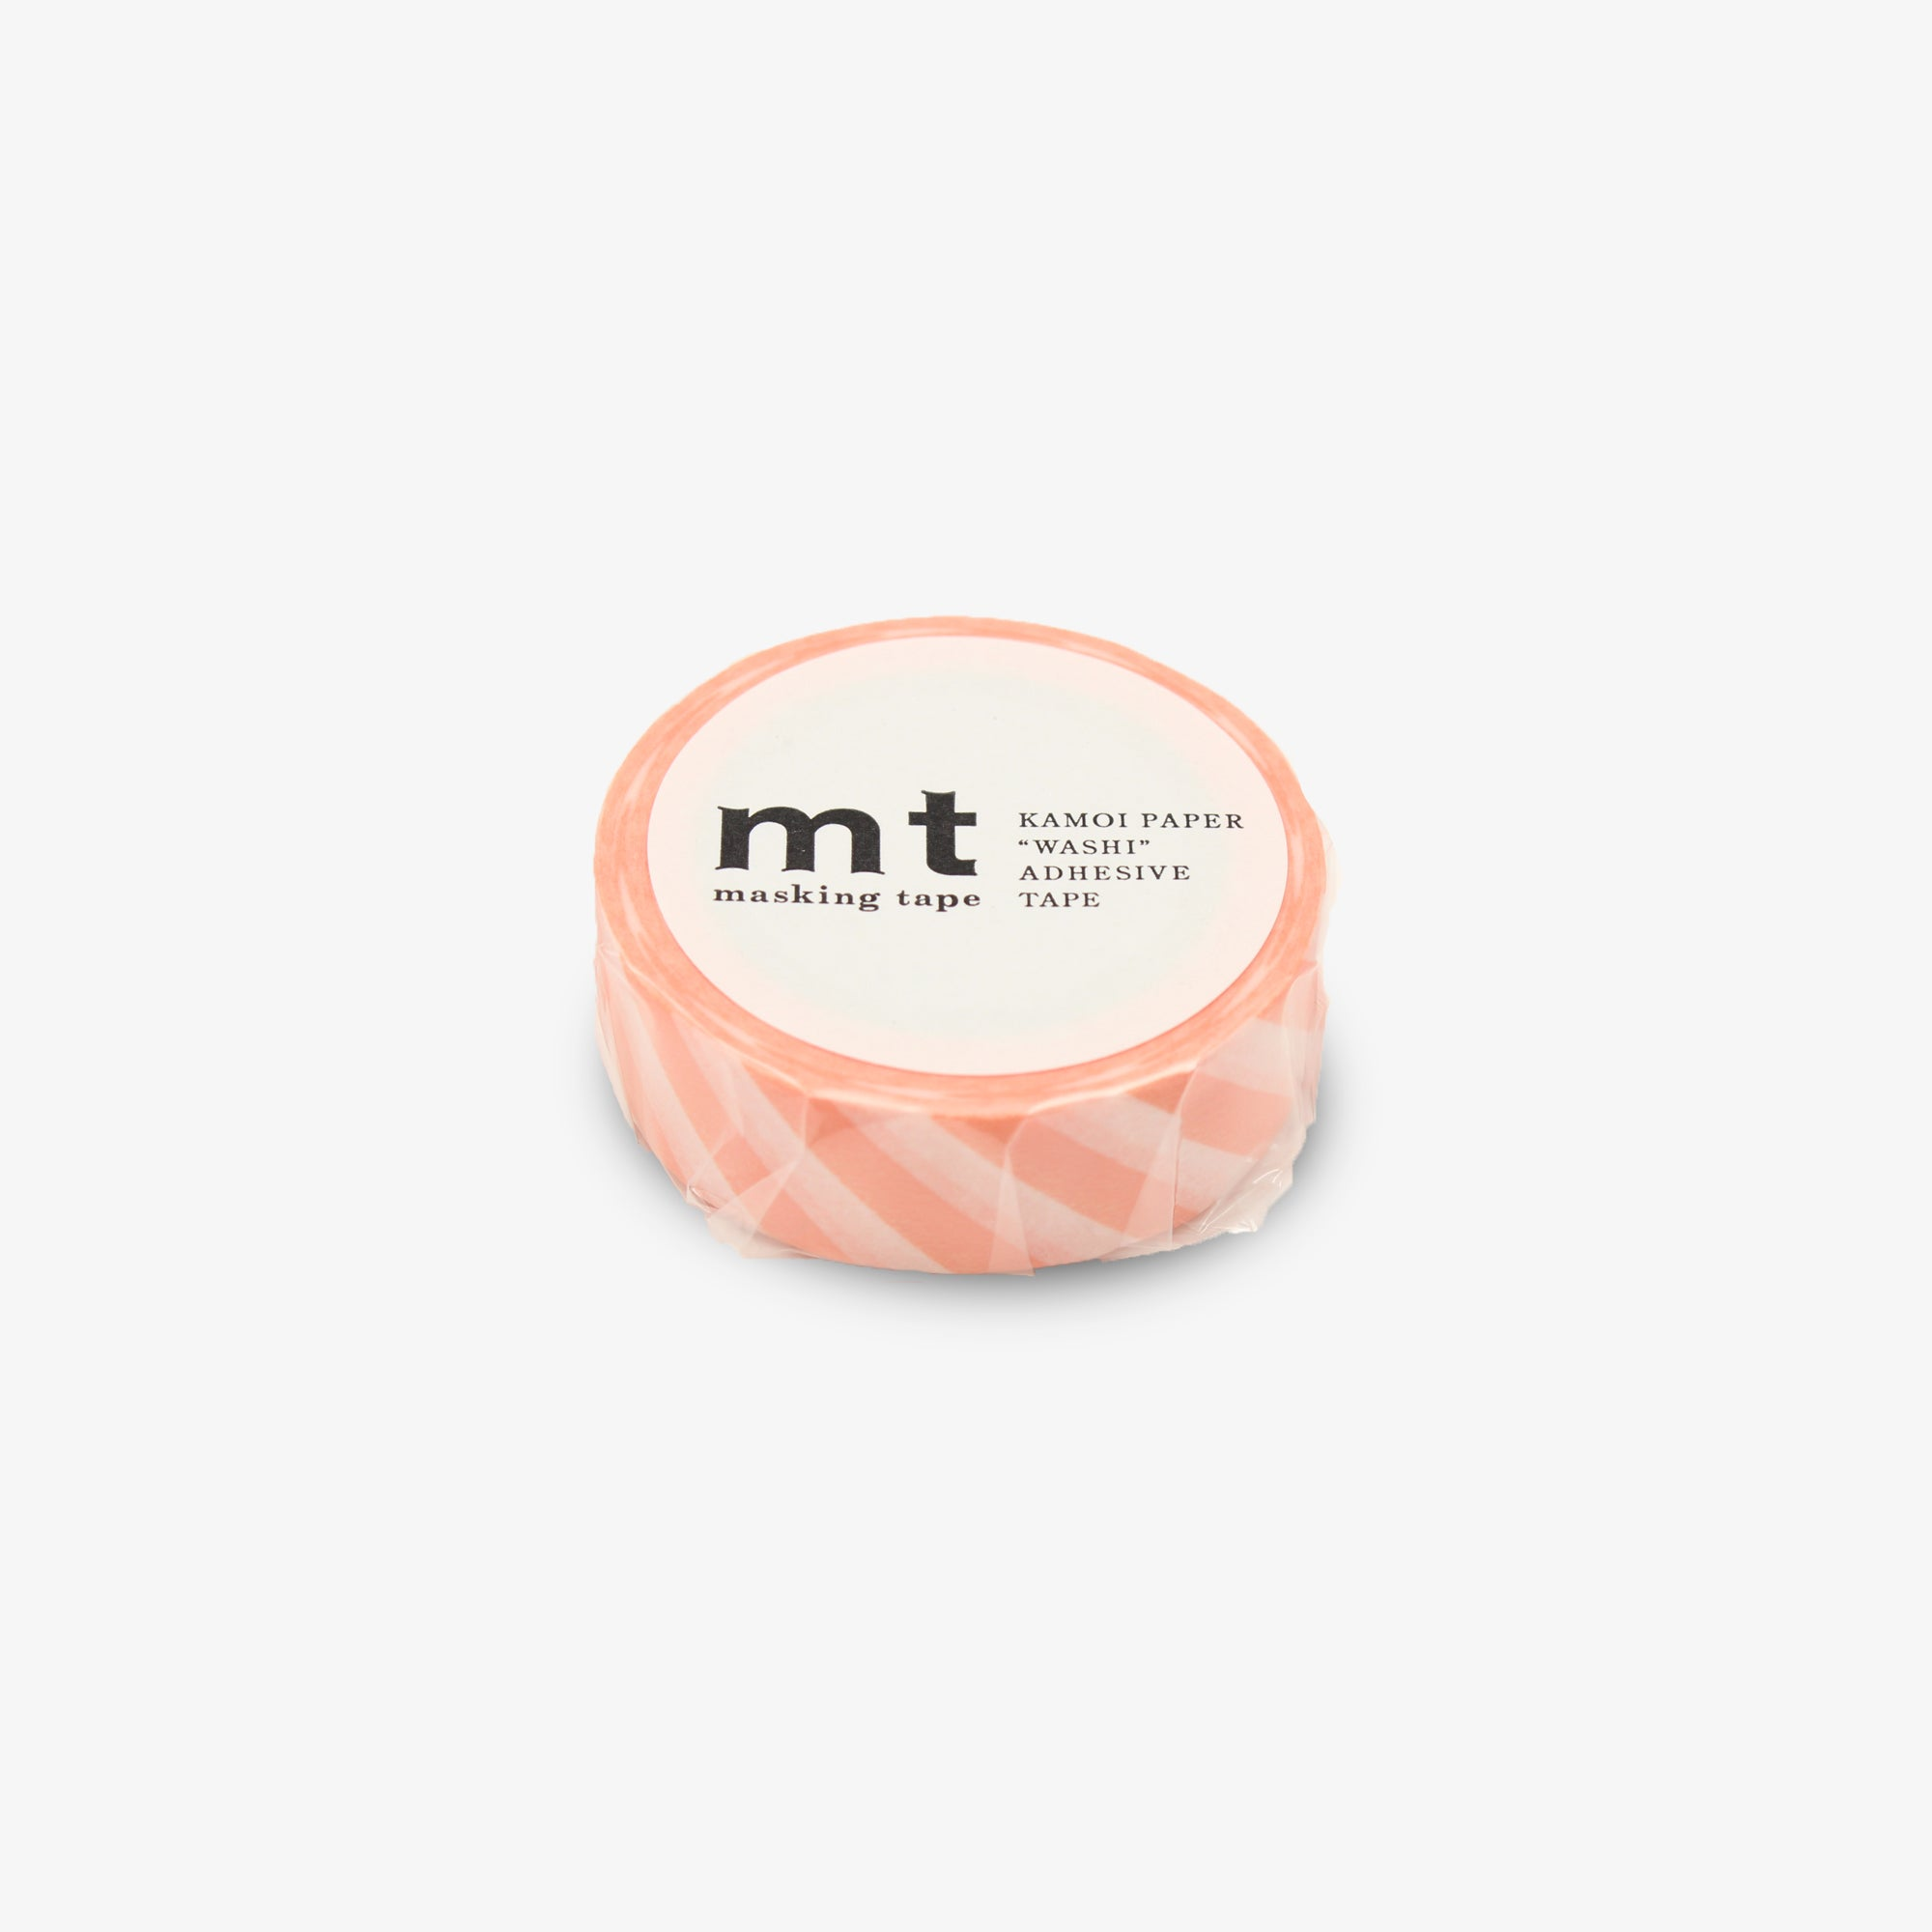 MT MASKING TAPE // PATTERN STRIPE SALMON PINK